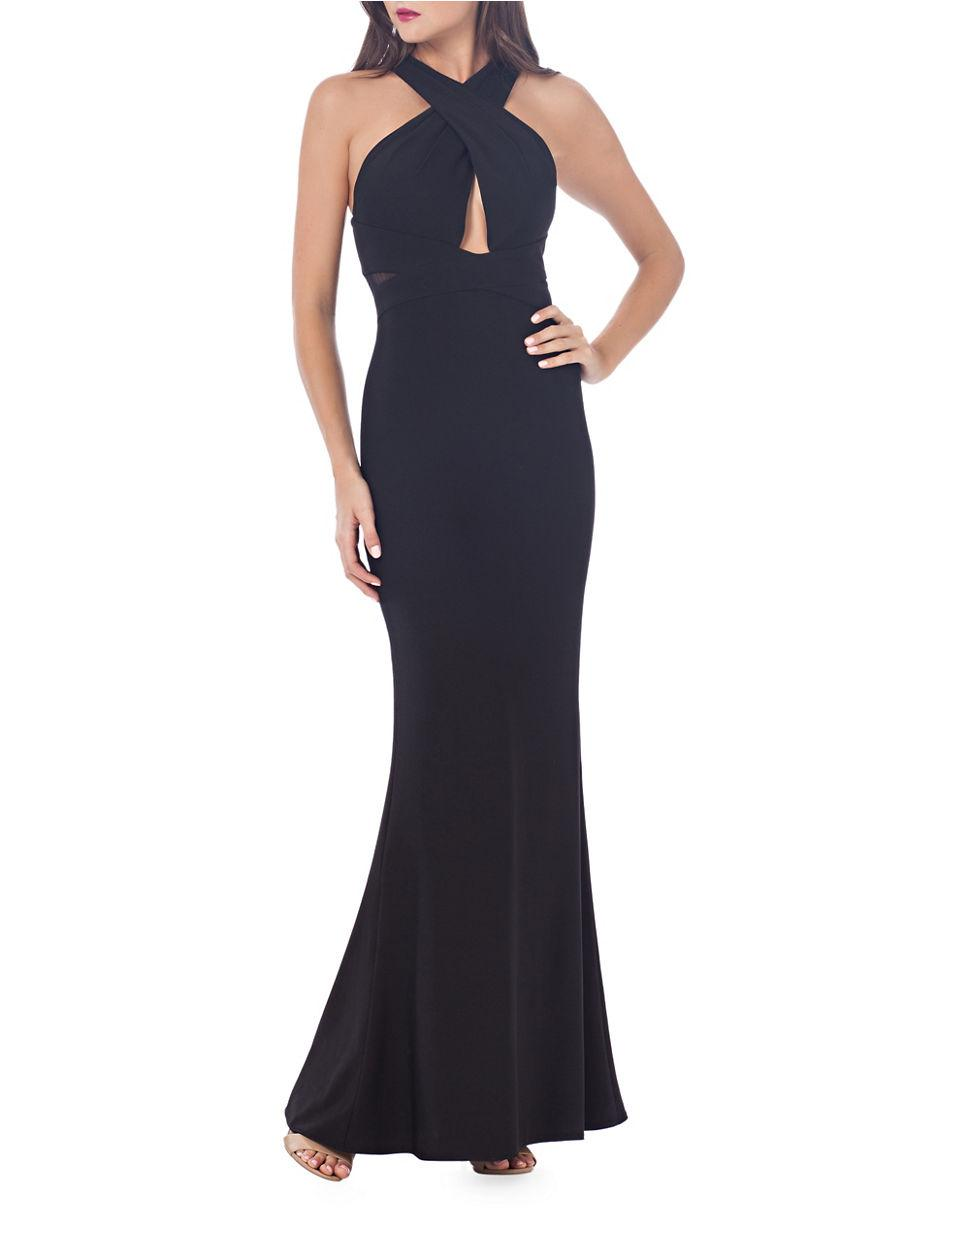 Lyst - Js collections Halterneck Crisscross Back Evening Gown in Black